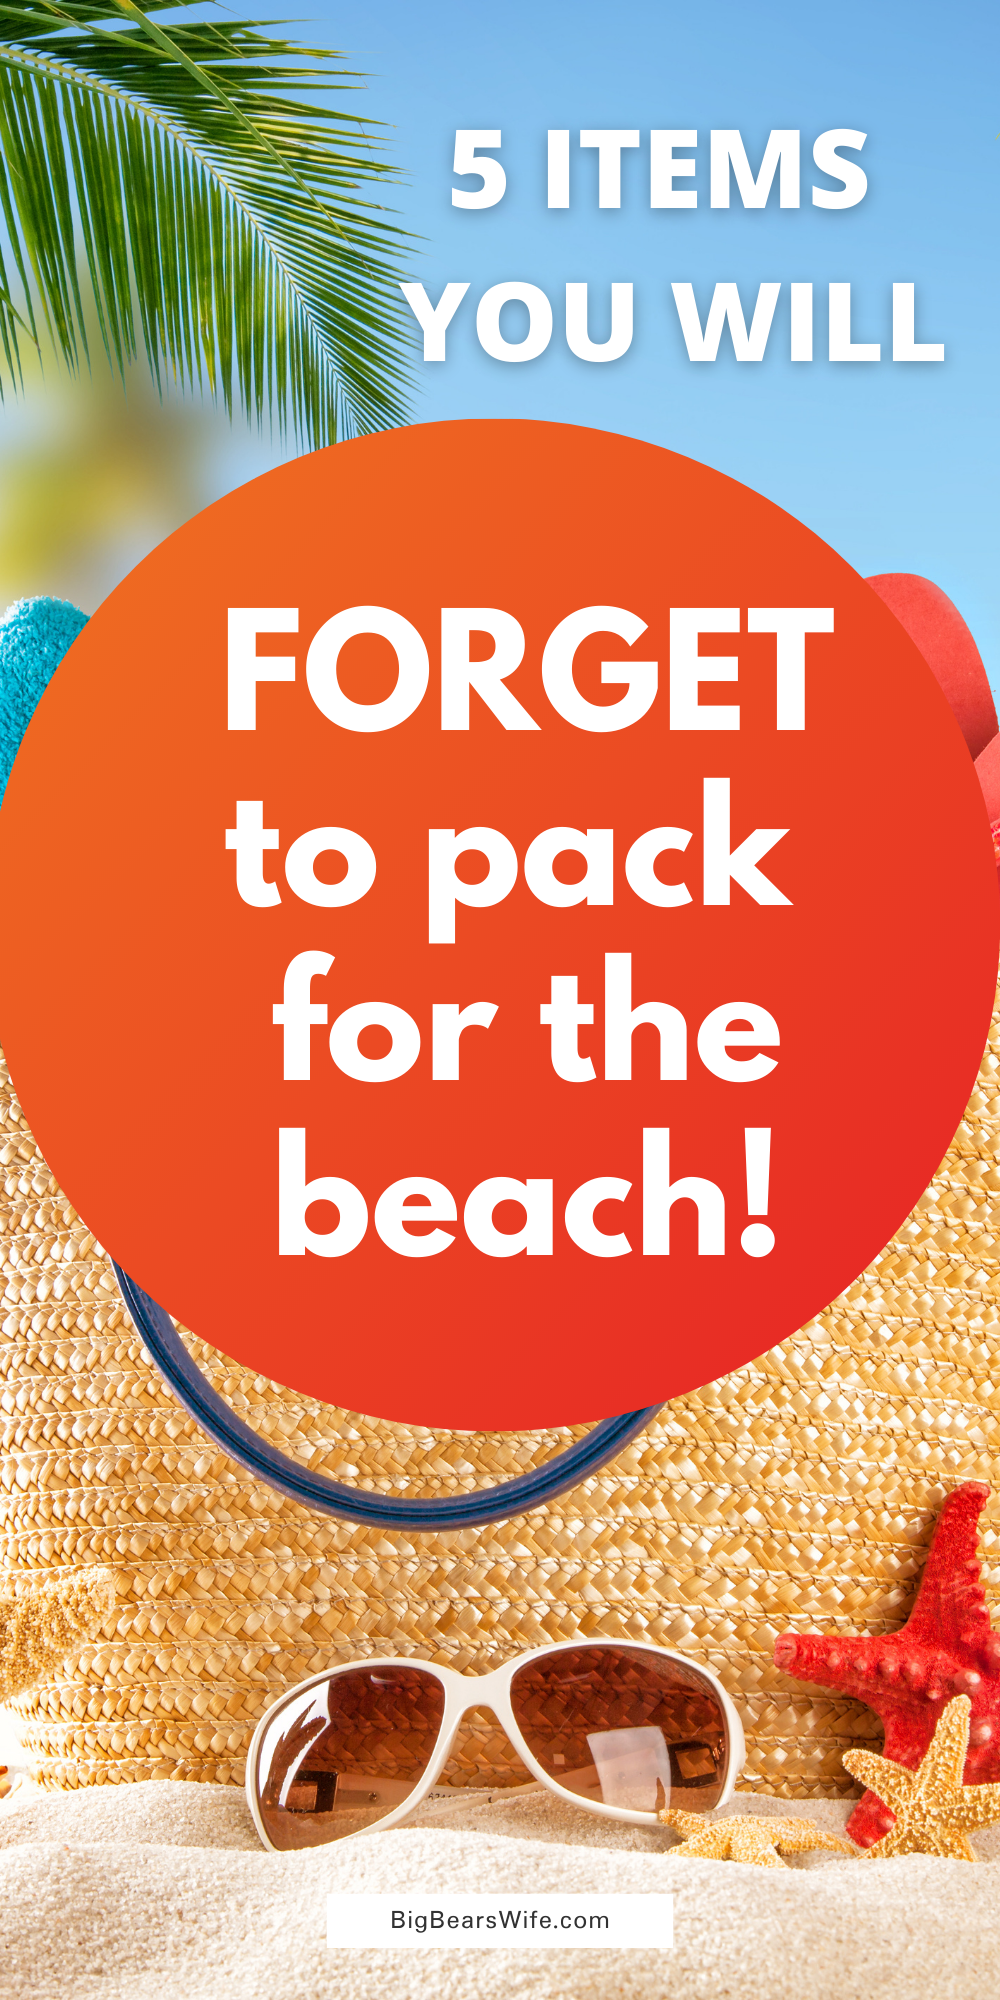 Are you wondering what to pack for the beach? Worried that you're going to forget something? Here are 5 Items that You're going to forget when you pack for the beach! via @bigbearswife